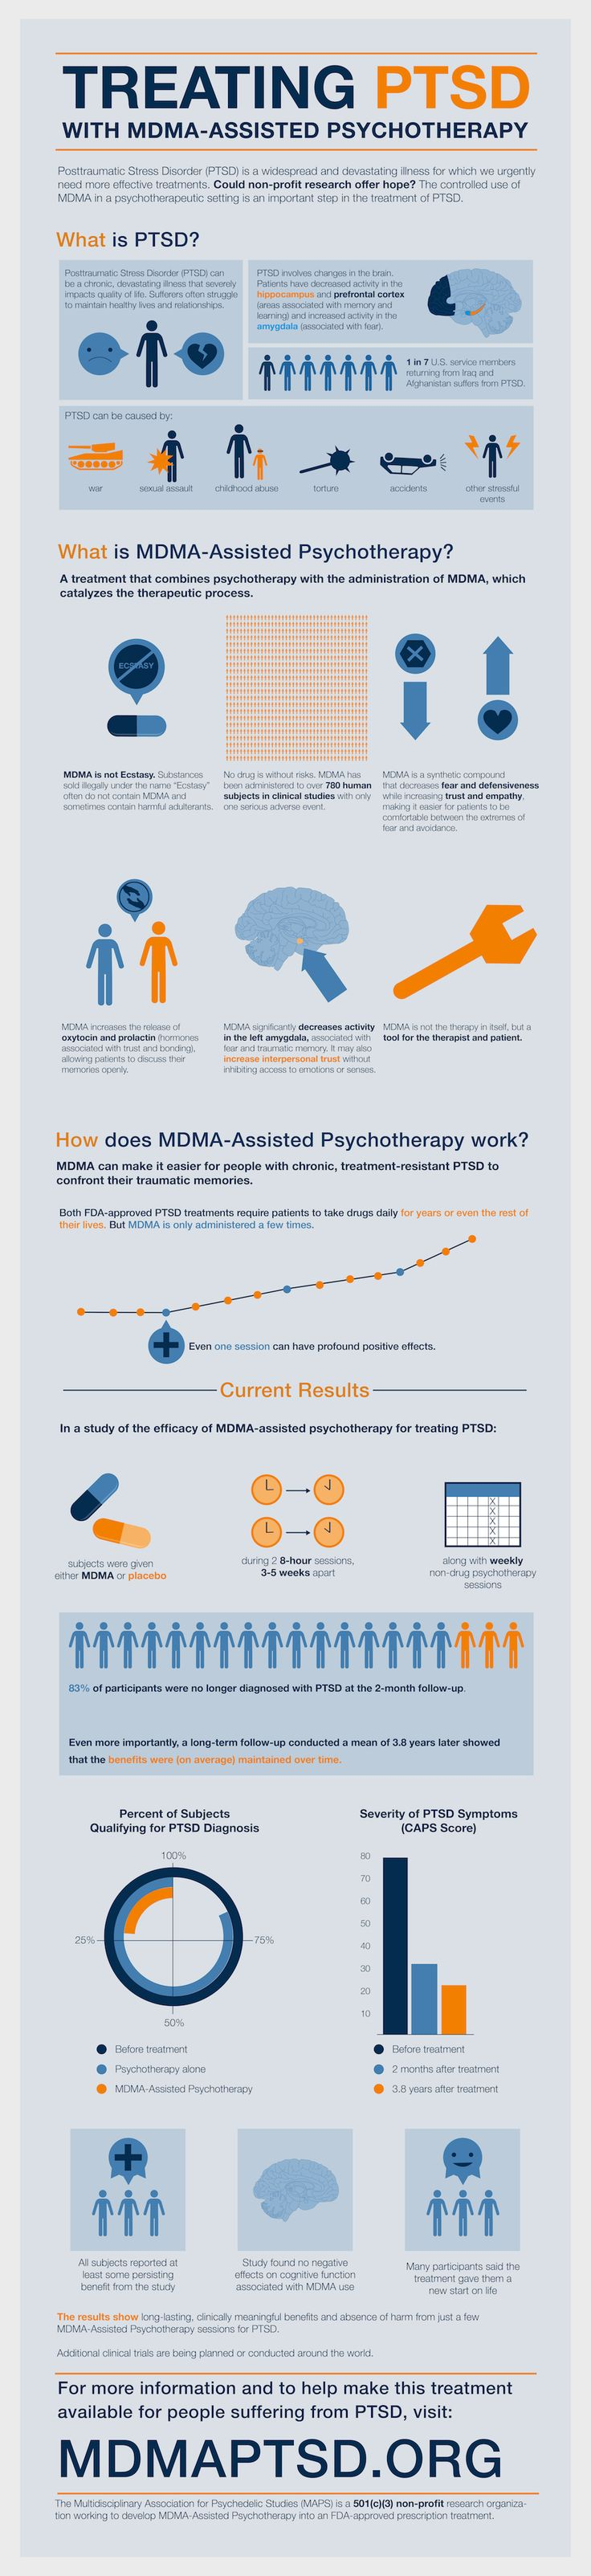 mdma assisted psychotherapy Mdma-assisted psychotherapy combines talk therapy with the use of mdma, a drug that may enhance the effectiveness of psychotherapy for ptsd mdma (3,4-methylenedioxymethamphetamine) is a synthetic compound recognized for its ability to decrease fear and defensiveness while increasing trust and empathy.